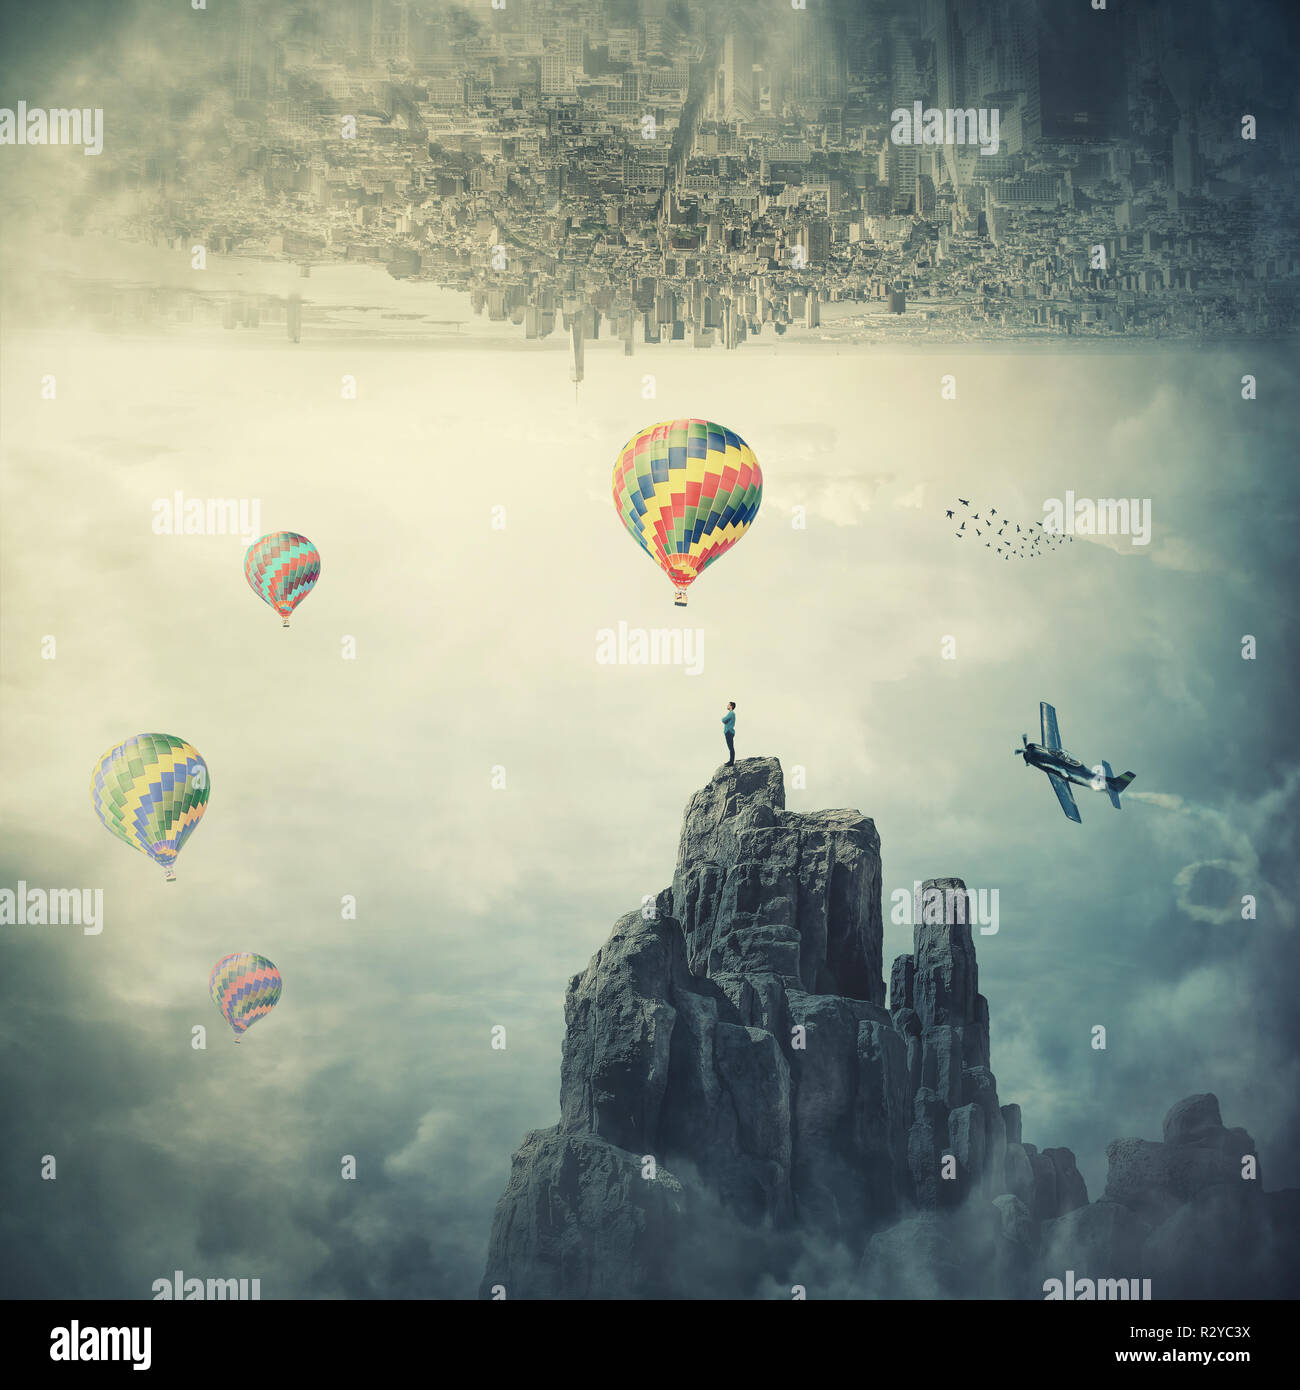 Man standing on the top of a mountain at the border of two parallel worlds a city above sky and hot air balloons flying. Beautiful mystical scene, ima - Stock Image